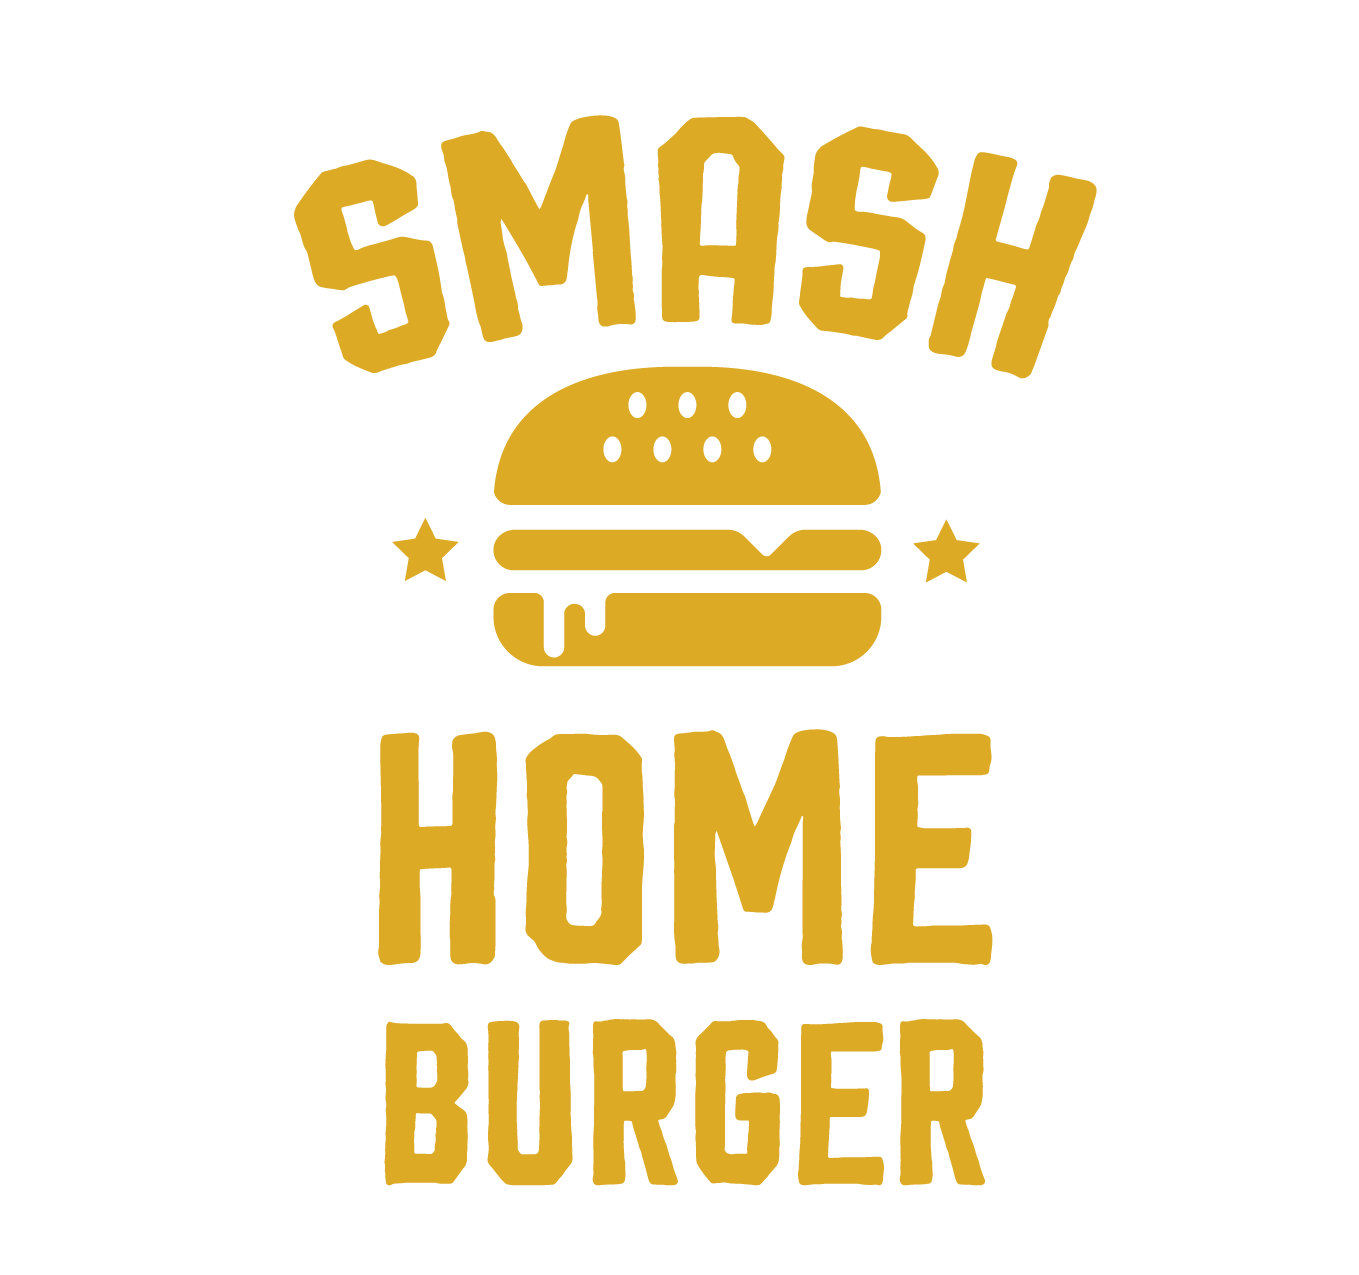 Logo-Hamburgueria - Smash Home Burger